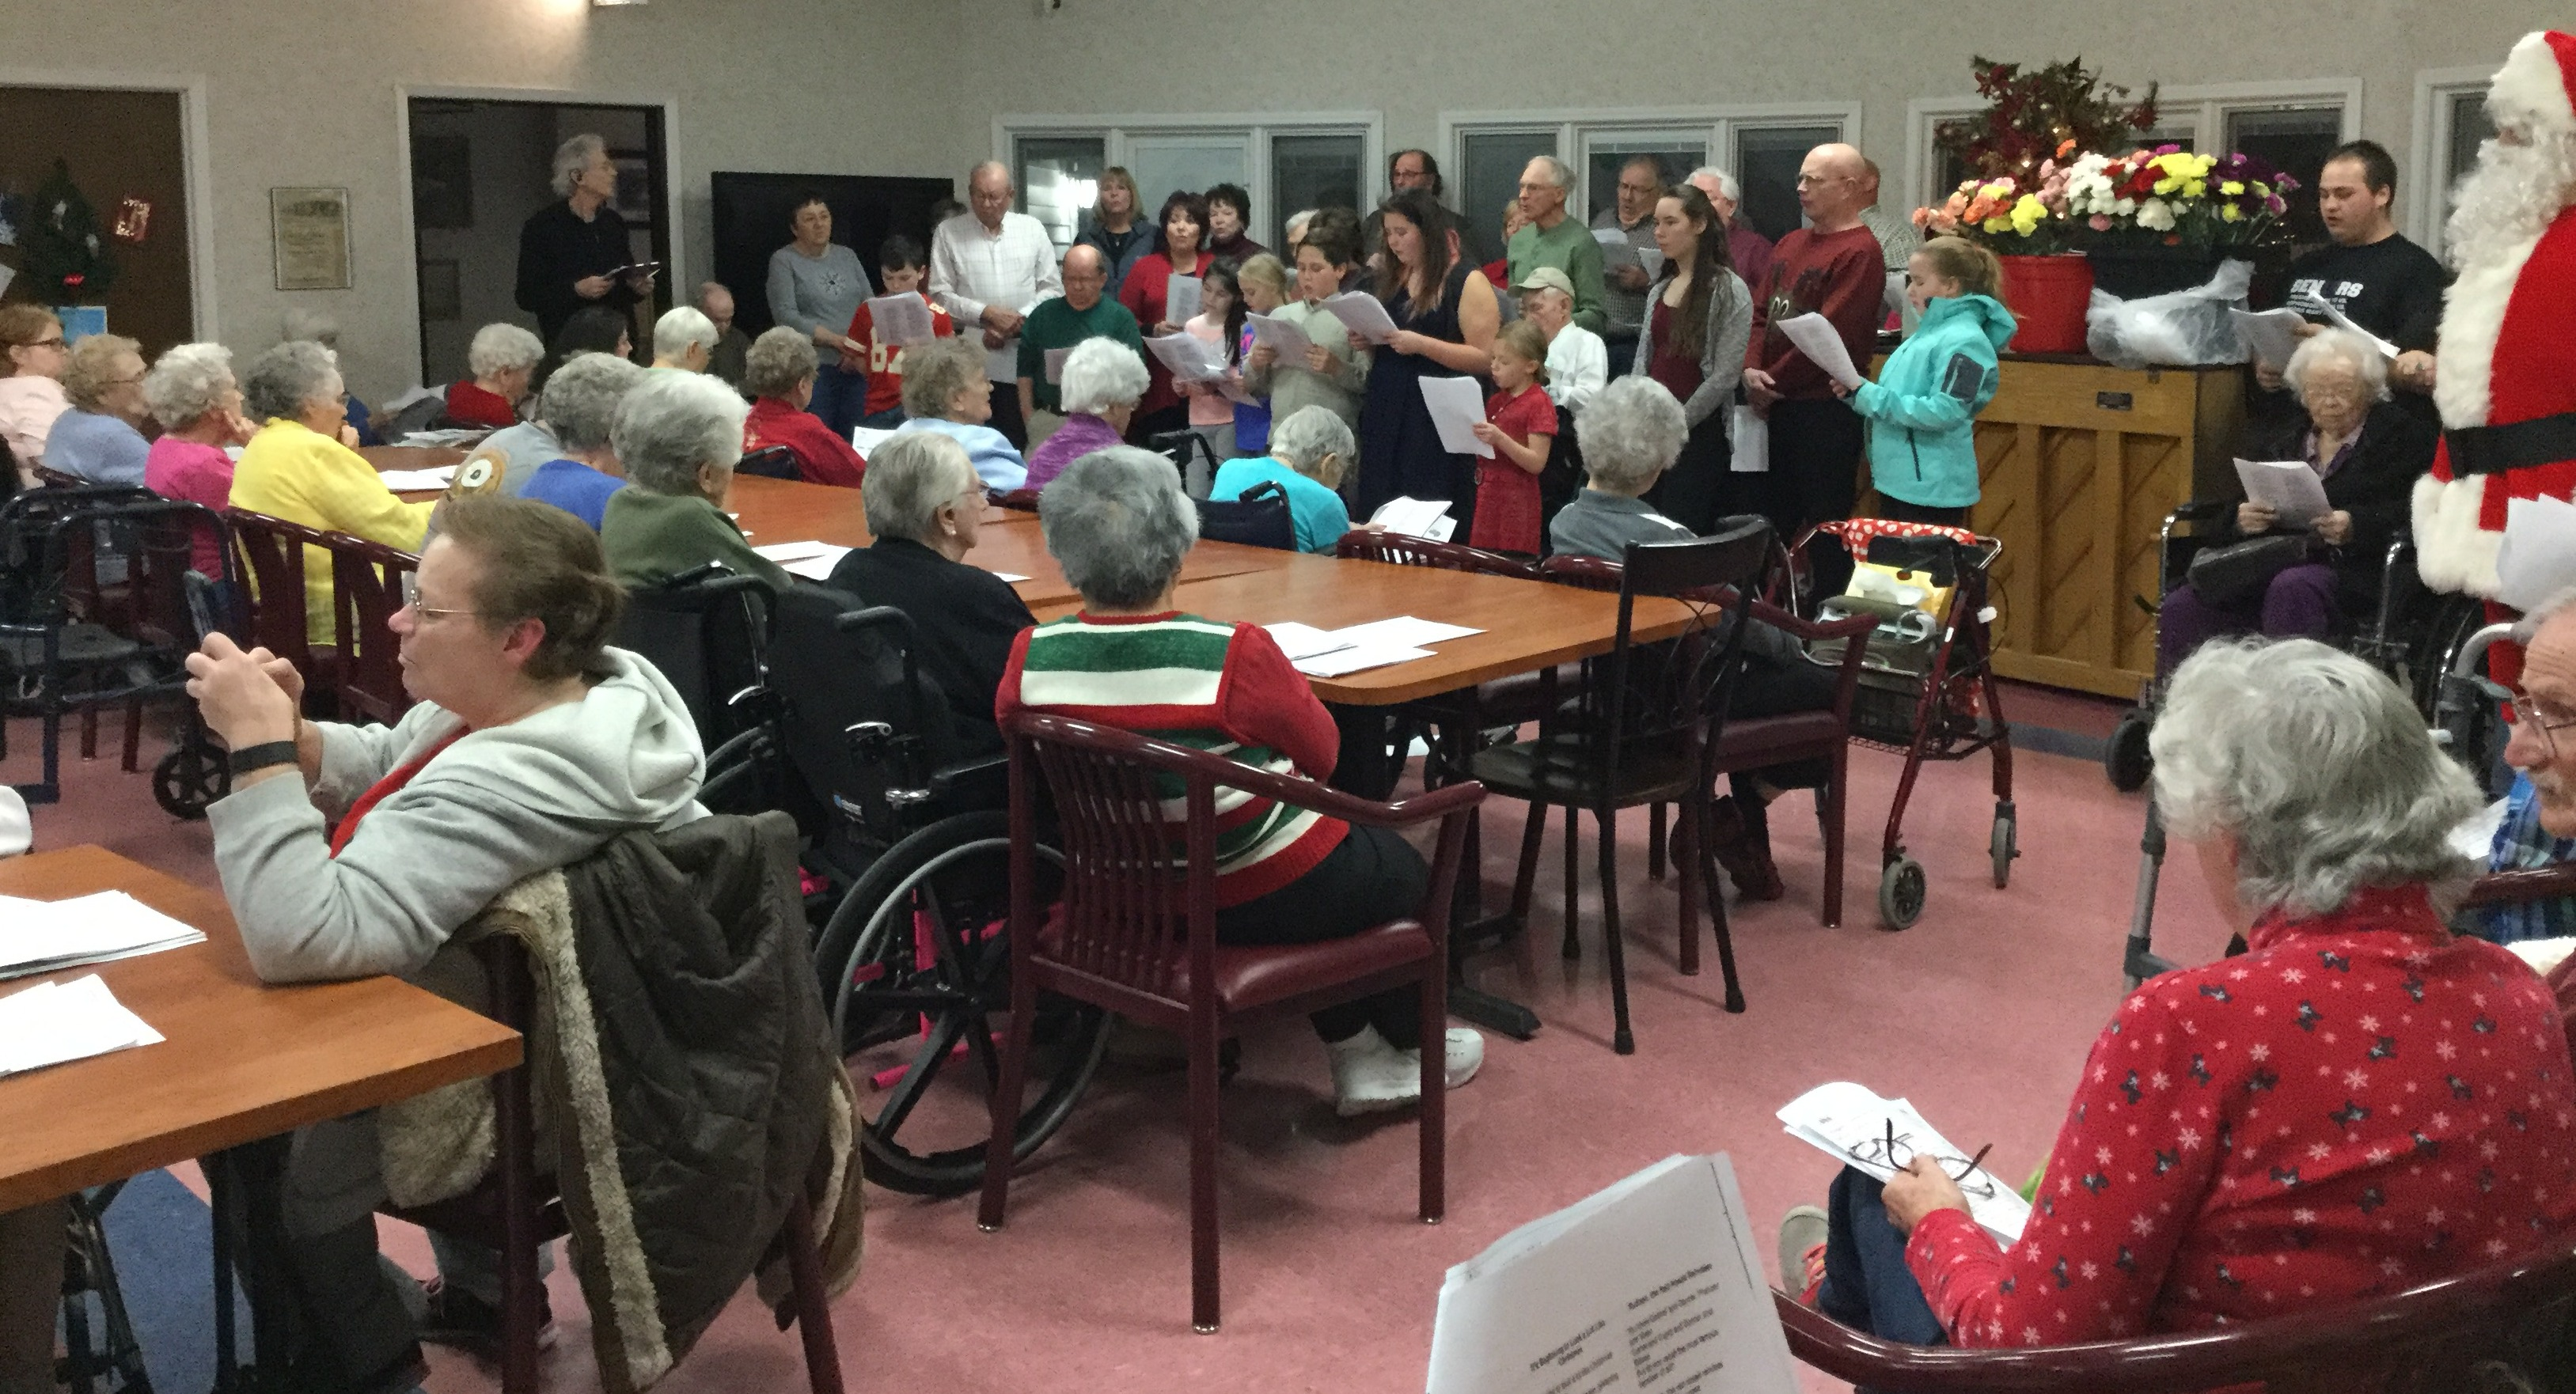 Dunlap Specialty Care Christmas carolers